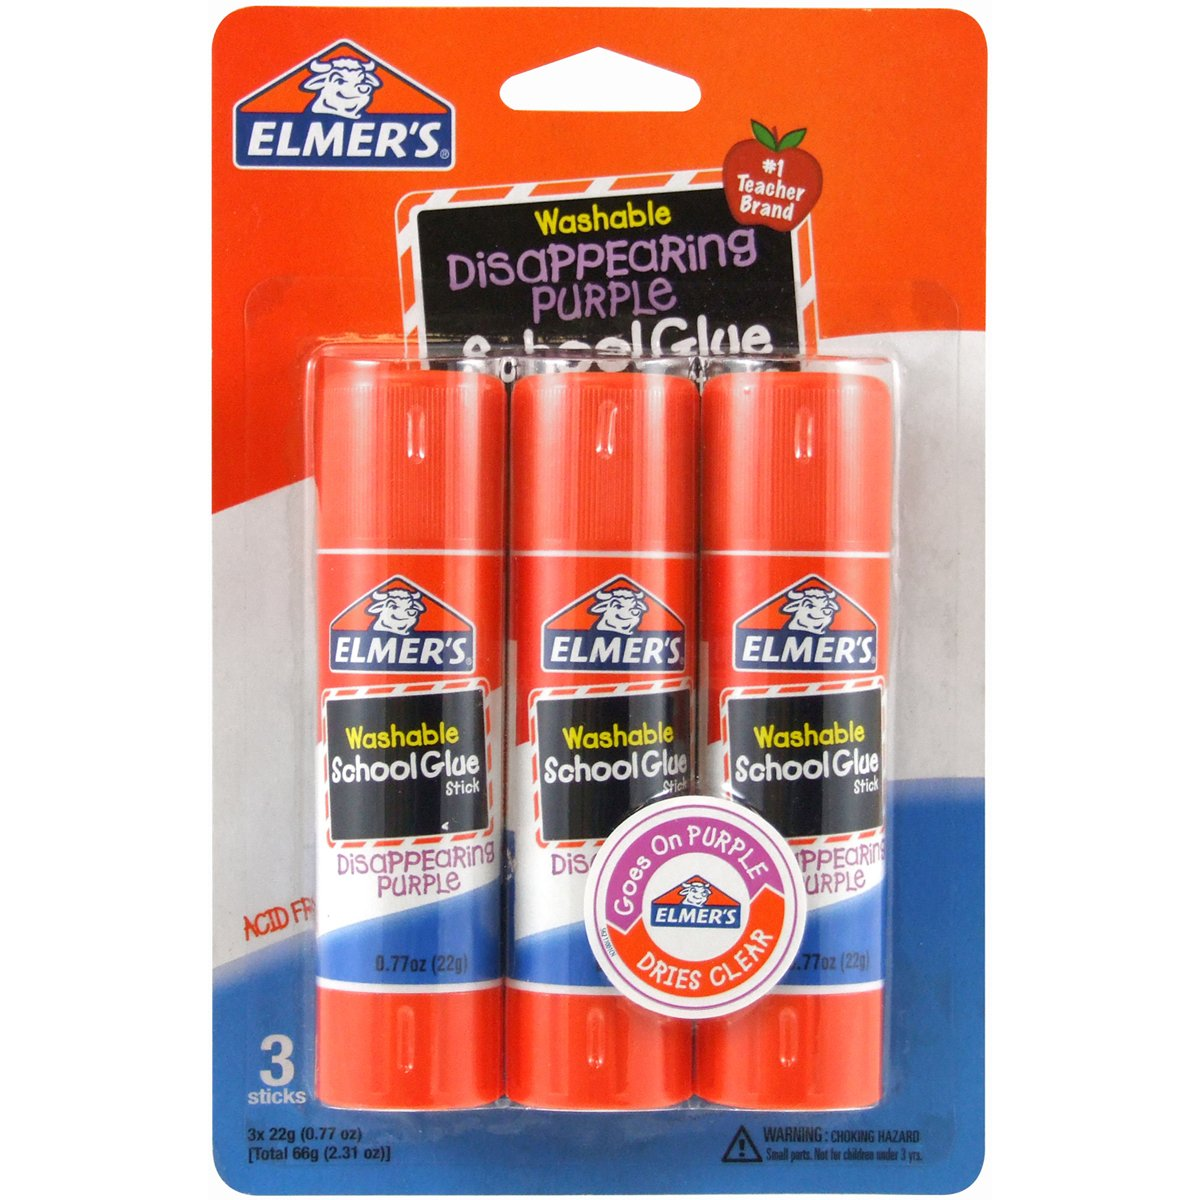 Elmer's Disappearing Purple School Glue Sticks, 0.77 oz Each, 3 Sticks per Pack (E562) Elmers